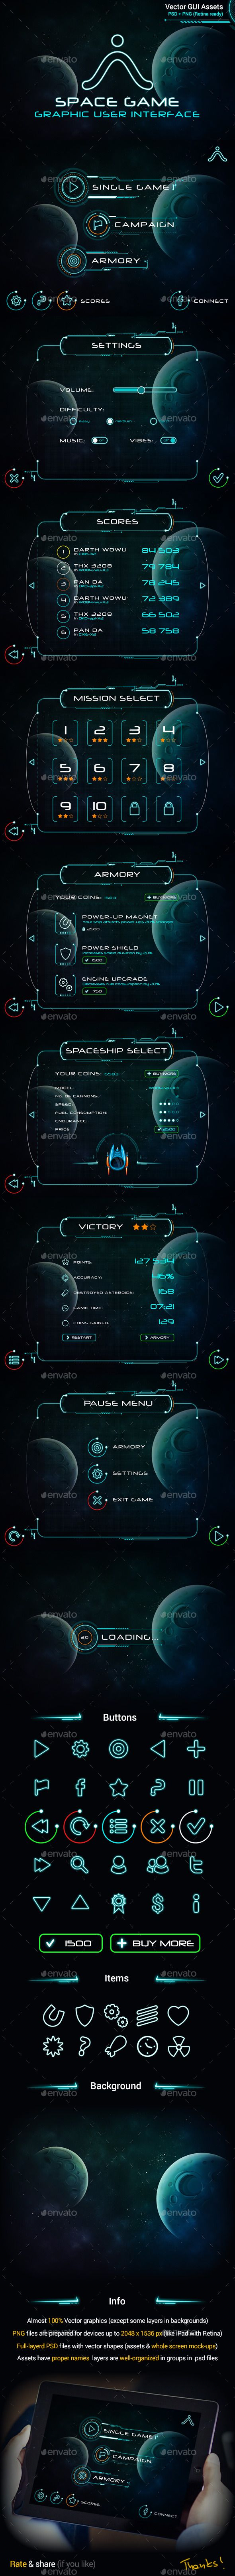 Space Game GUI Set Template PSD. Download here: https://graphicriver.net/item/space-game-gui-set/10039885?ref=ksioks